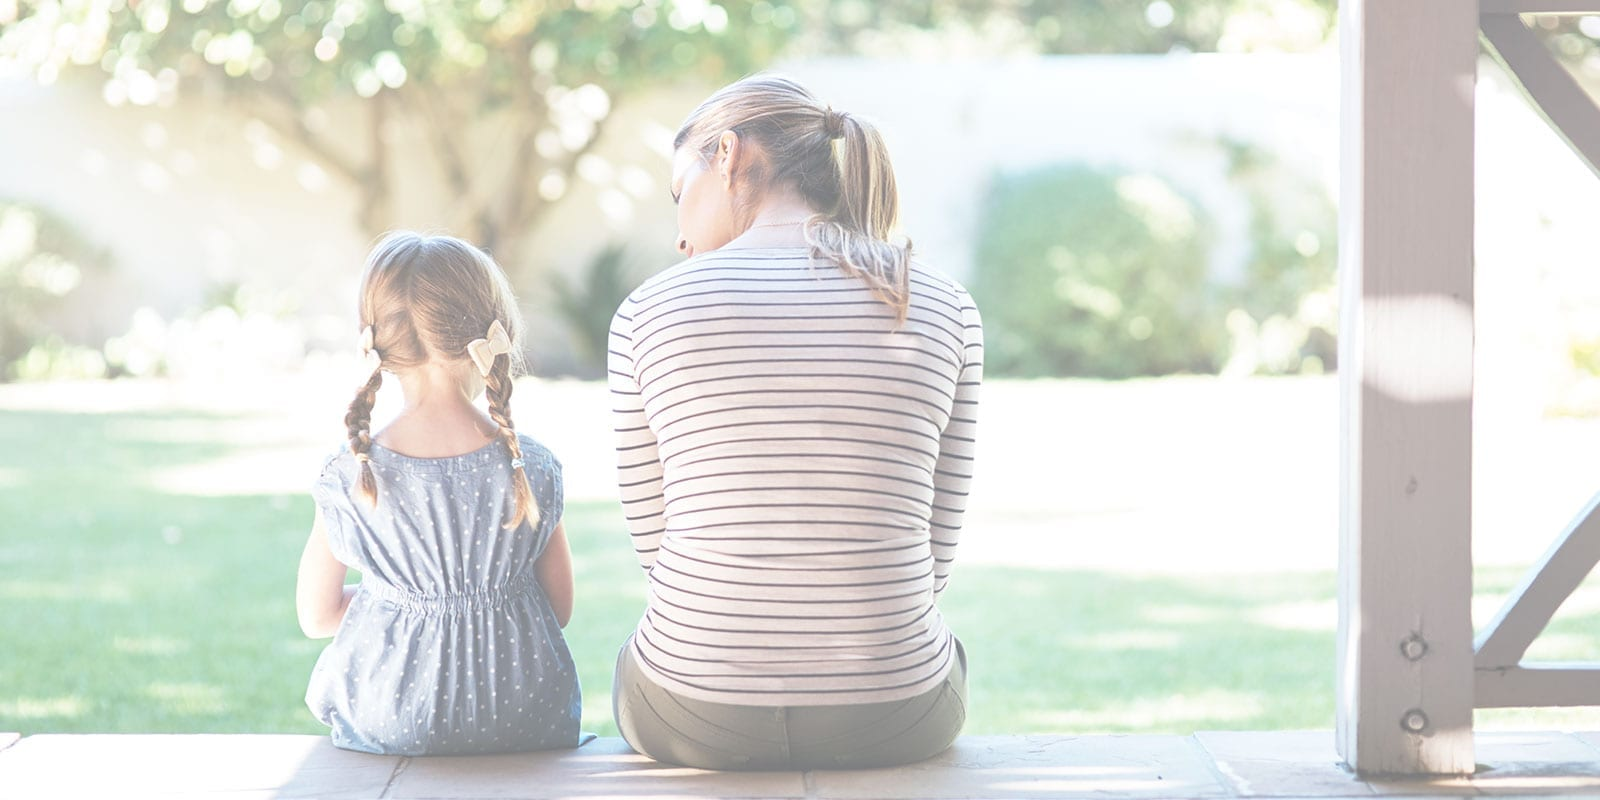 A mom and daughter sitting on porch together having a conversation